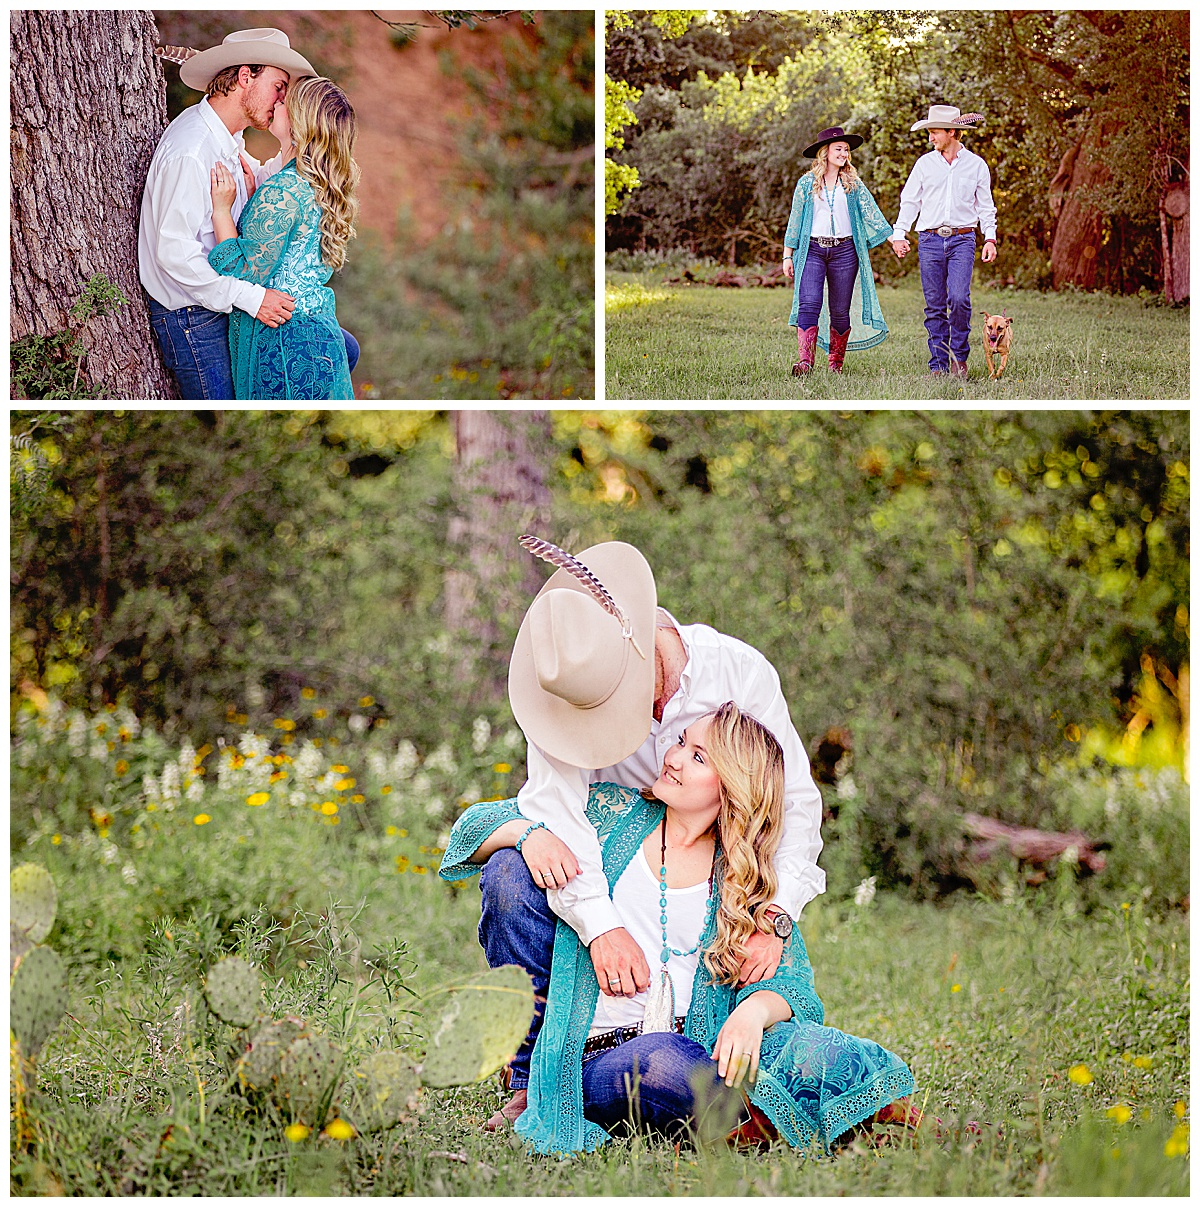 Rustic-Engagement-Session-Horse-Texas-Sunset-Carly-Barton-Photography_0005.jpg